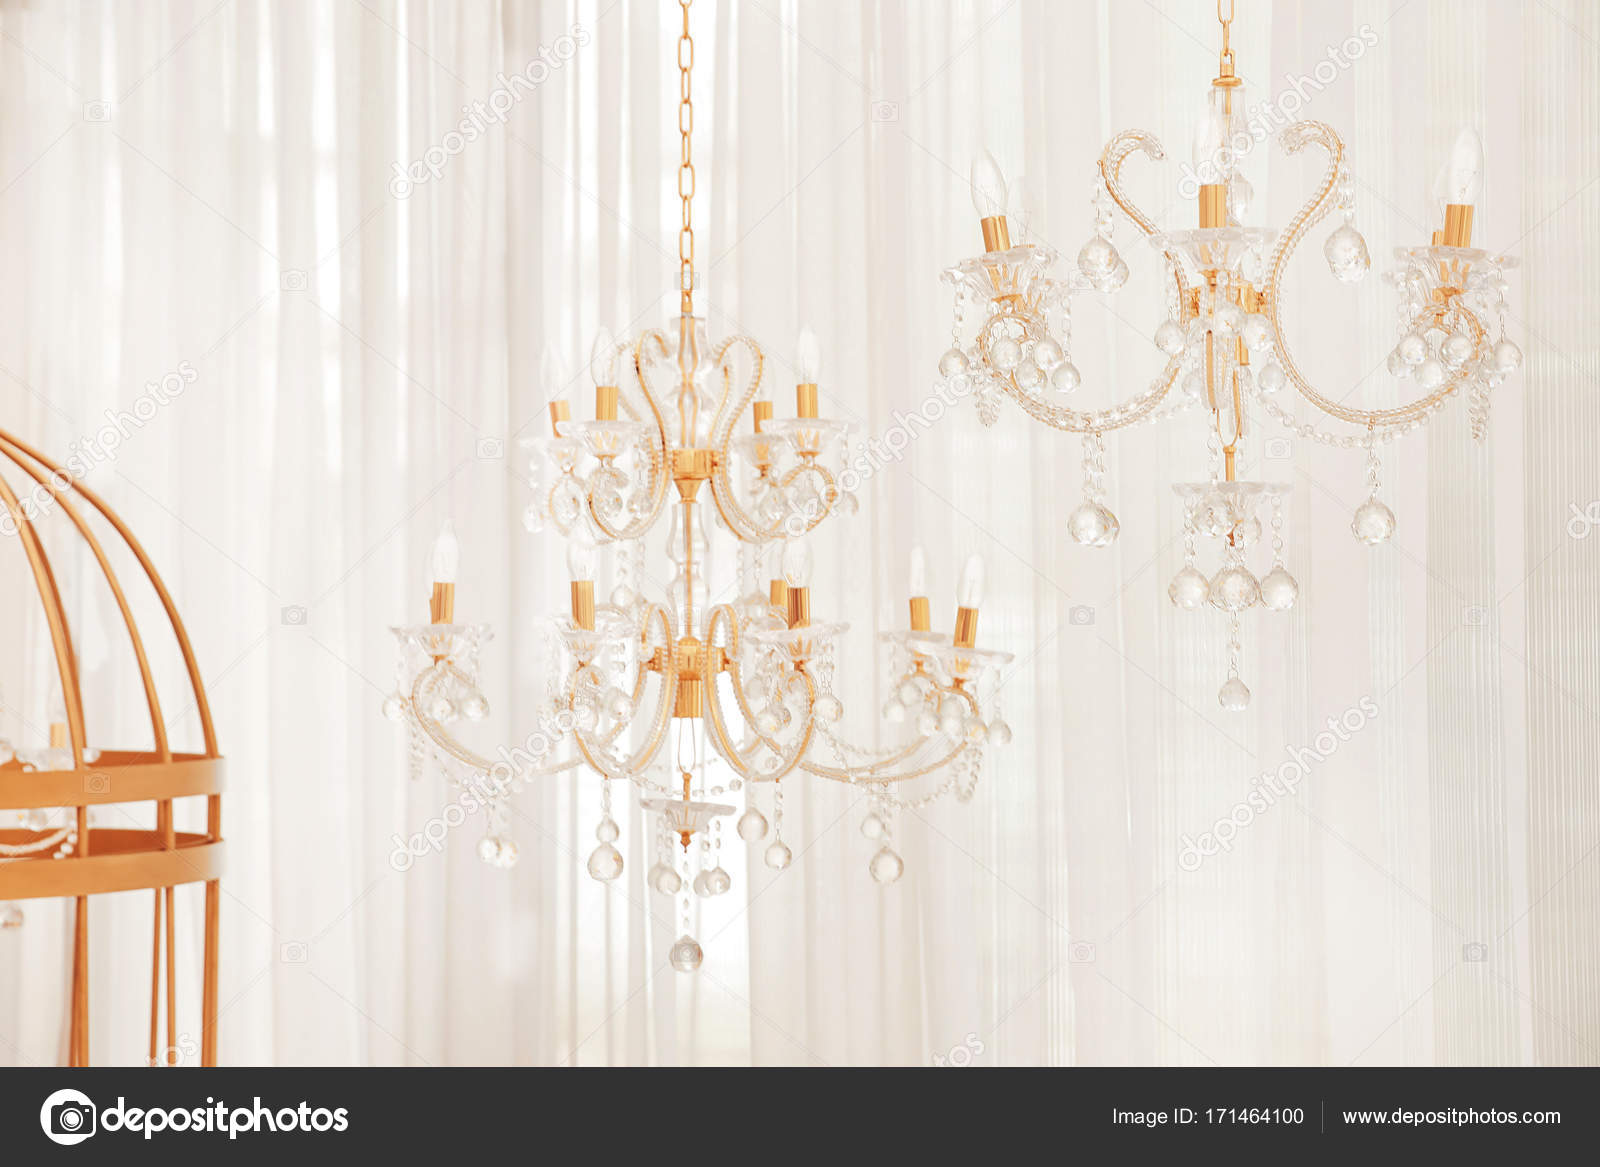 Miniature chandeliers in wedding hall stock photo belchonock miniature chandeliers in wedding hall stock photo arubaitofo Image collections